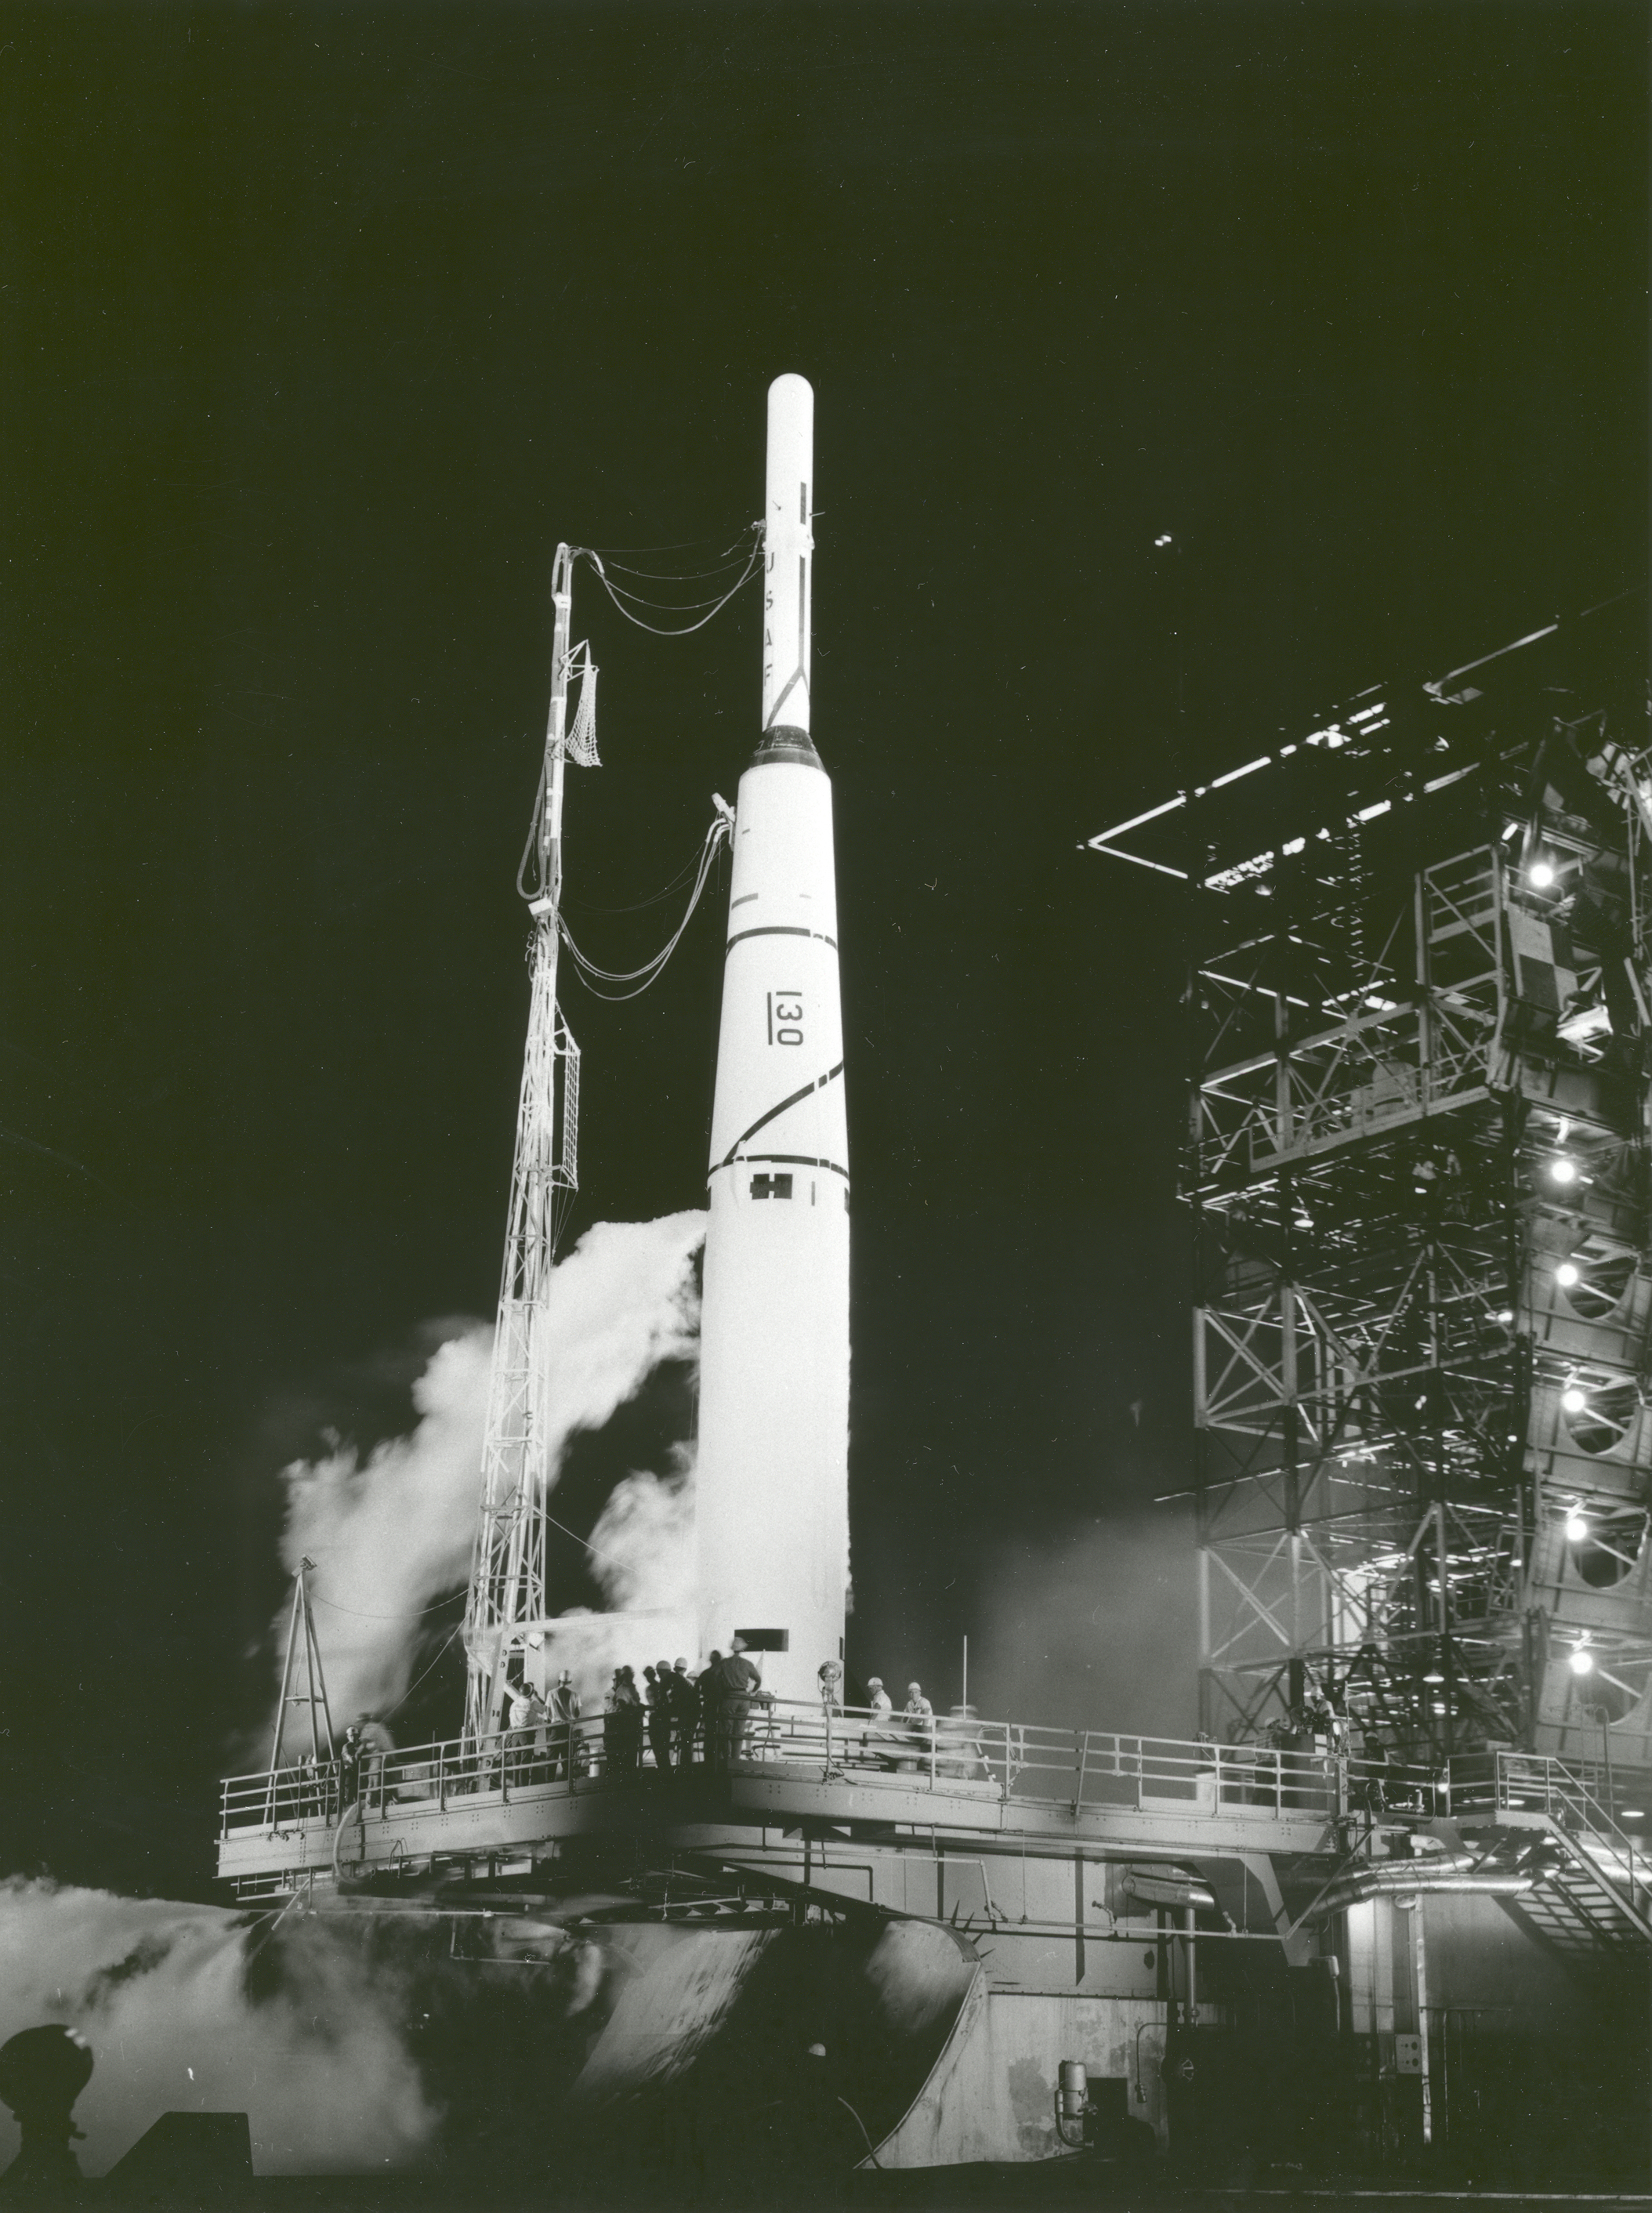 nasa pioneer mission 10 - photo #32